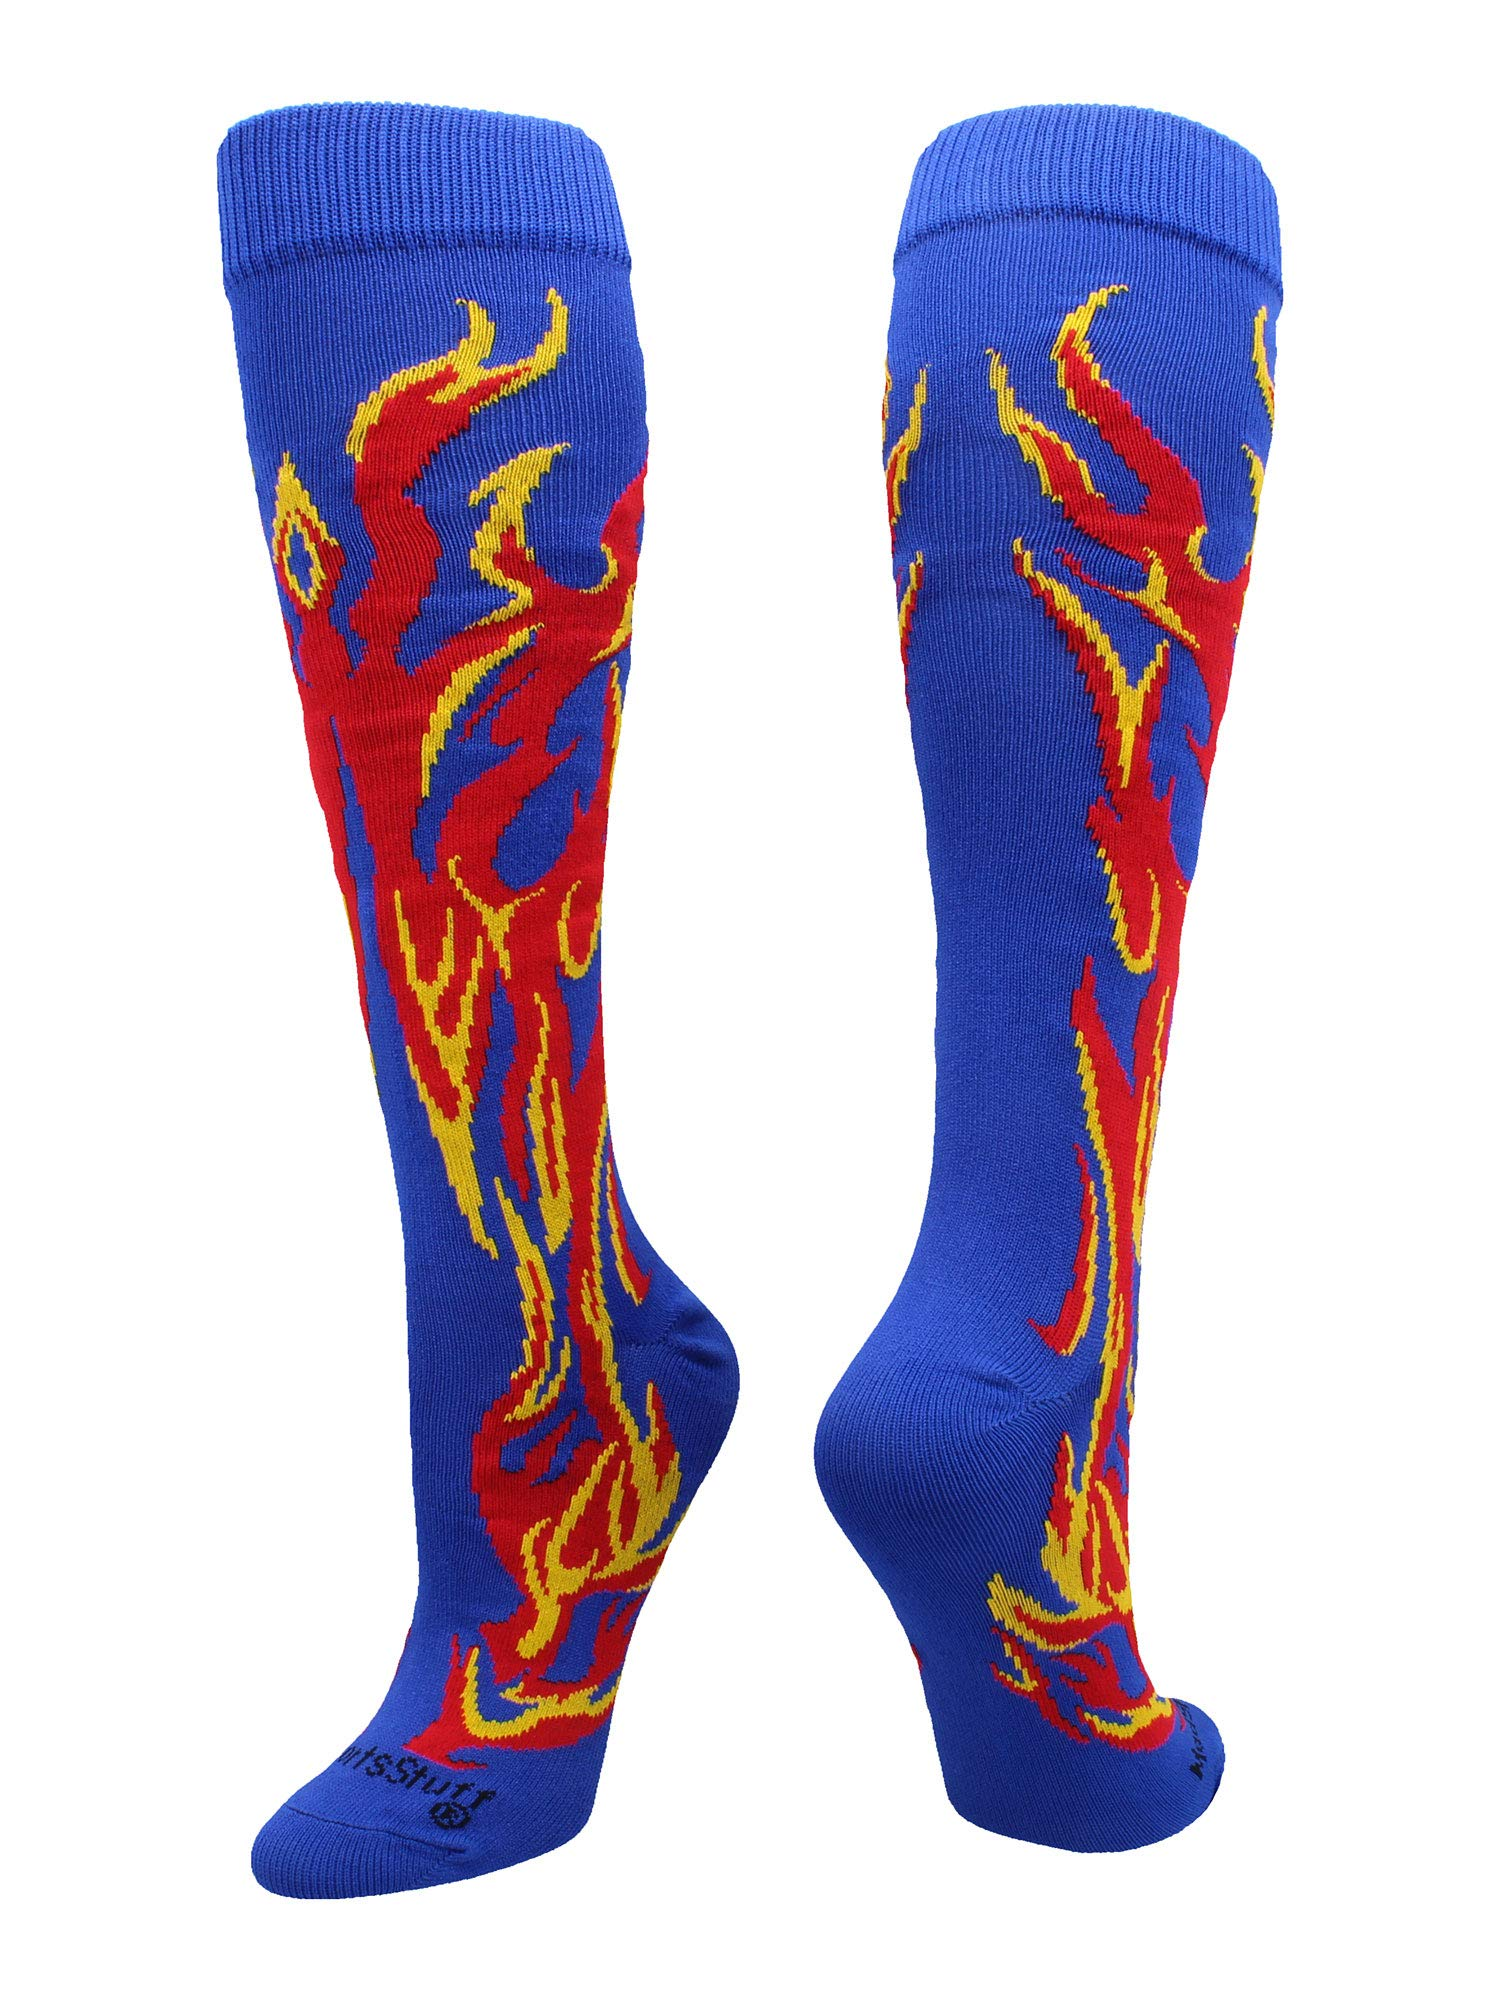 MadSportsStuff Flame Socks Athletic Over the Calf Socks (Royal/Red/Gold, Medium)